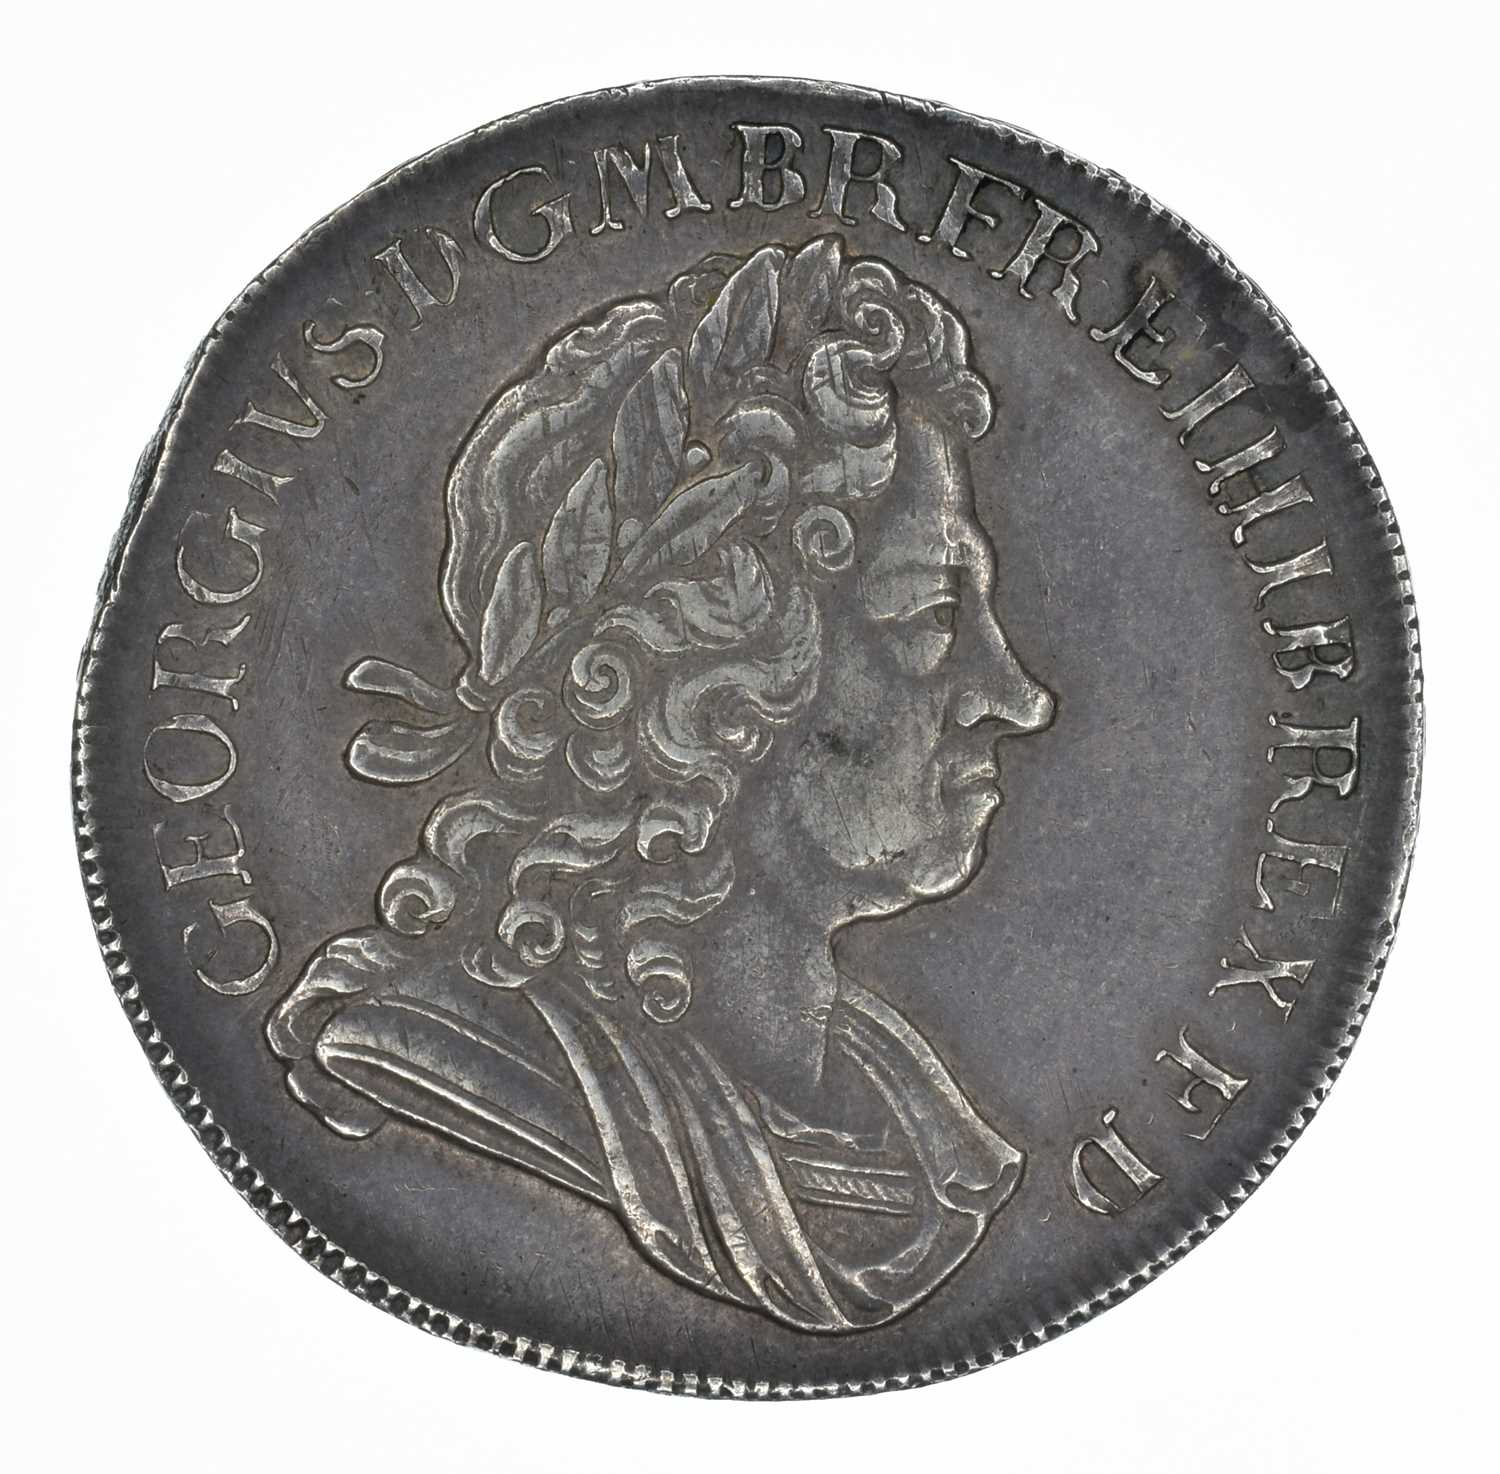 Lot 37 - King George I, Crown, 1726 D. TERTIO.